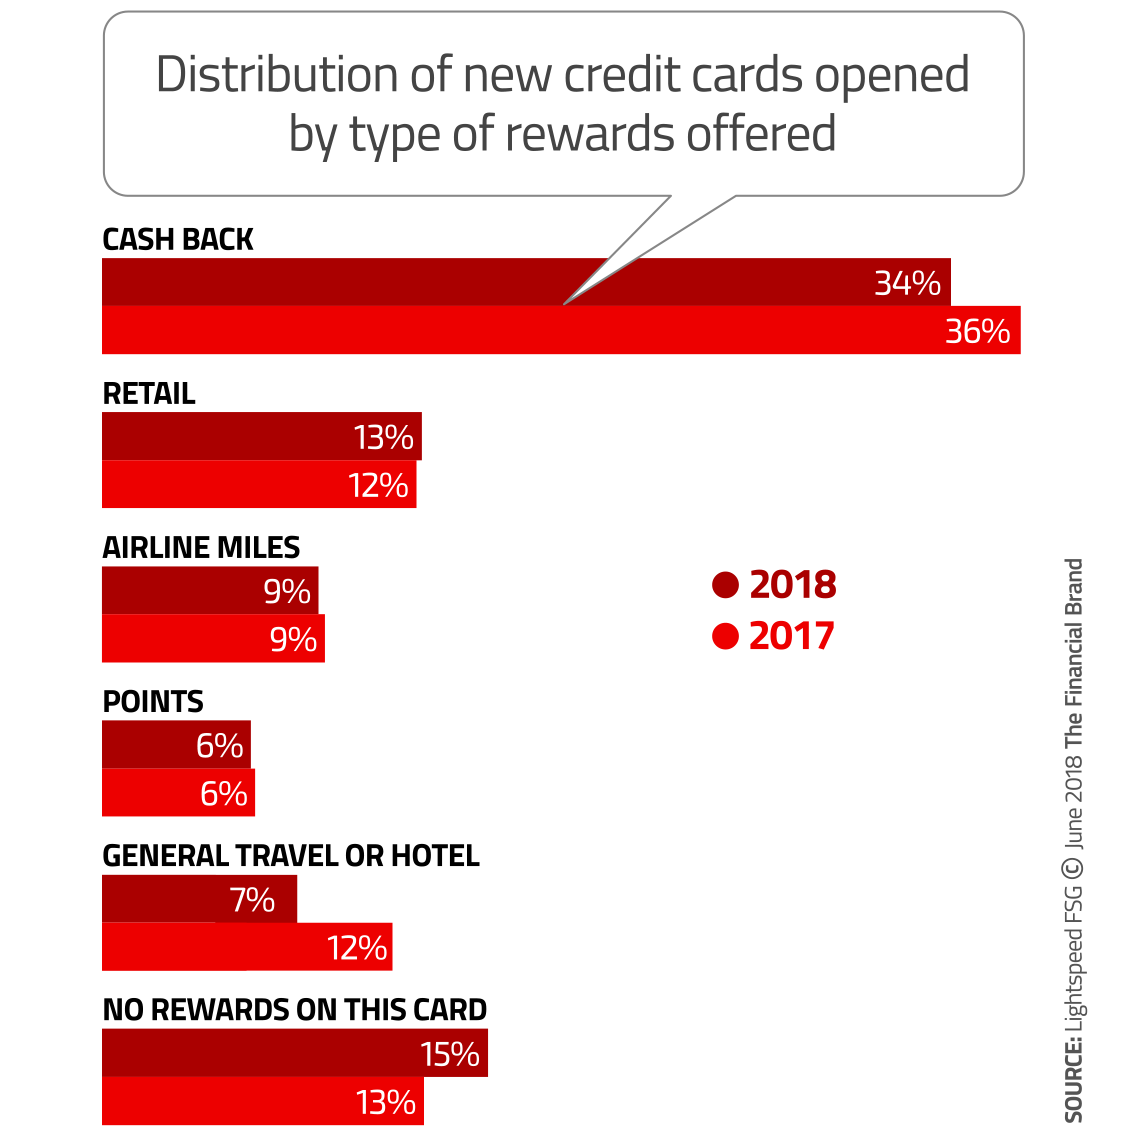 4 Factors to Consider When Crafting Your Credit Card Marketing Strategy